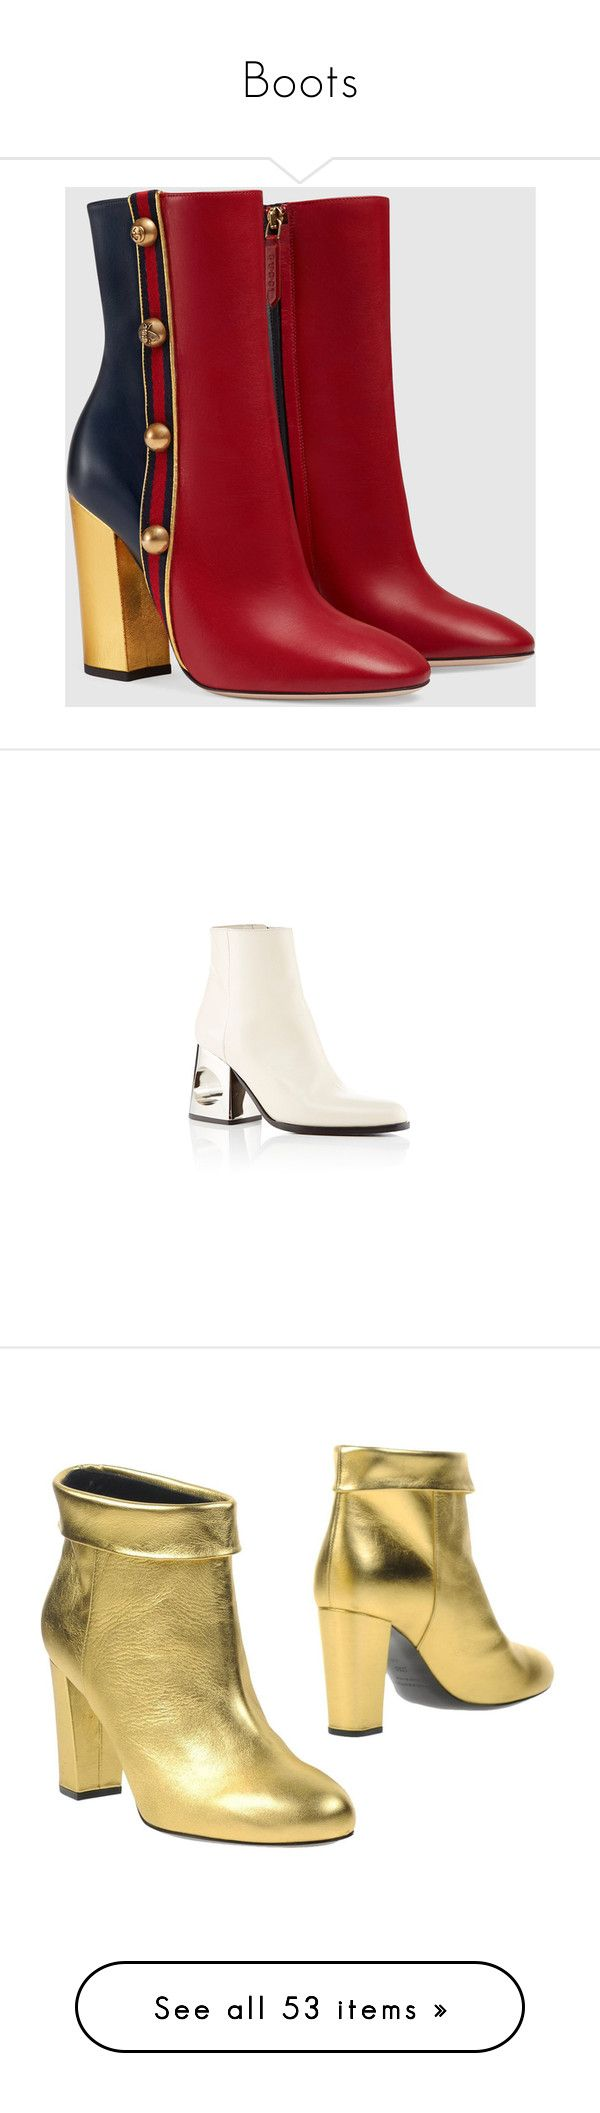 """""""Boots"""" by tynabrookler ❤ liked on Polyvore featuring shoes, boots, ankle booties, leather ankle boots, metallic ankle boots, bootie boots, gucci booties, zipper ankle boots, marni boots and short boots"""